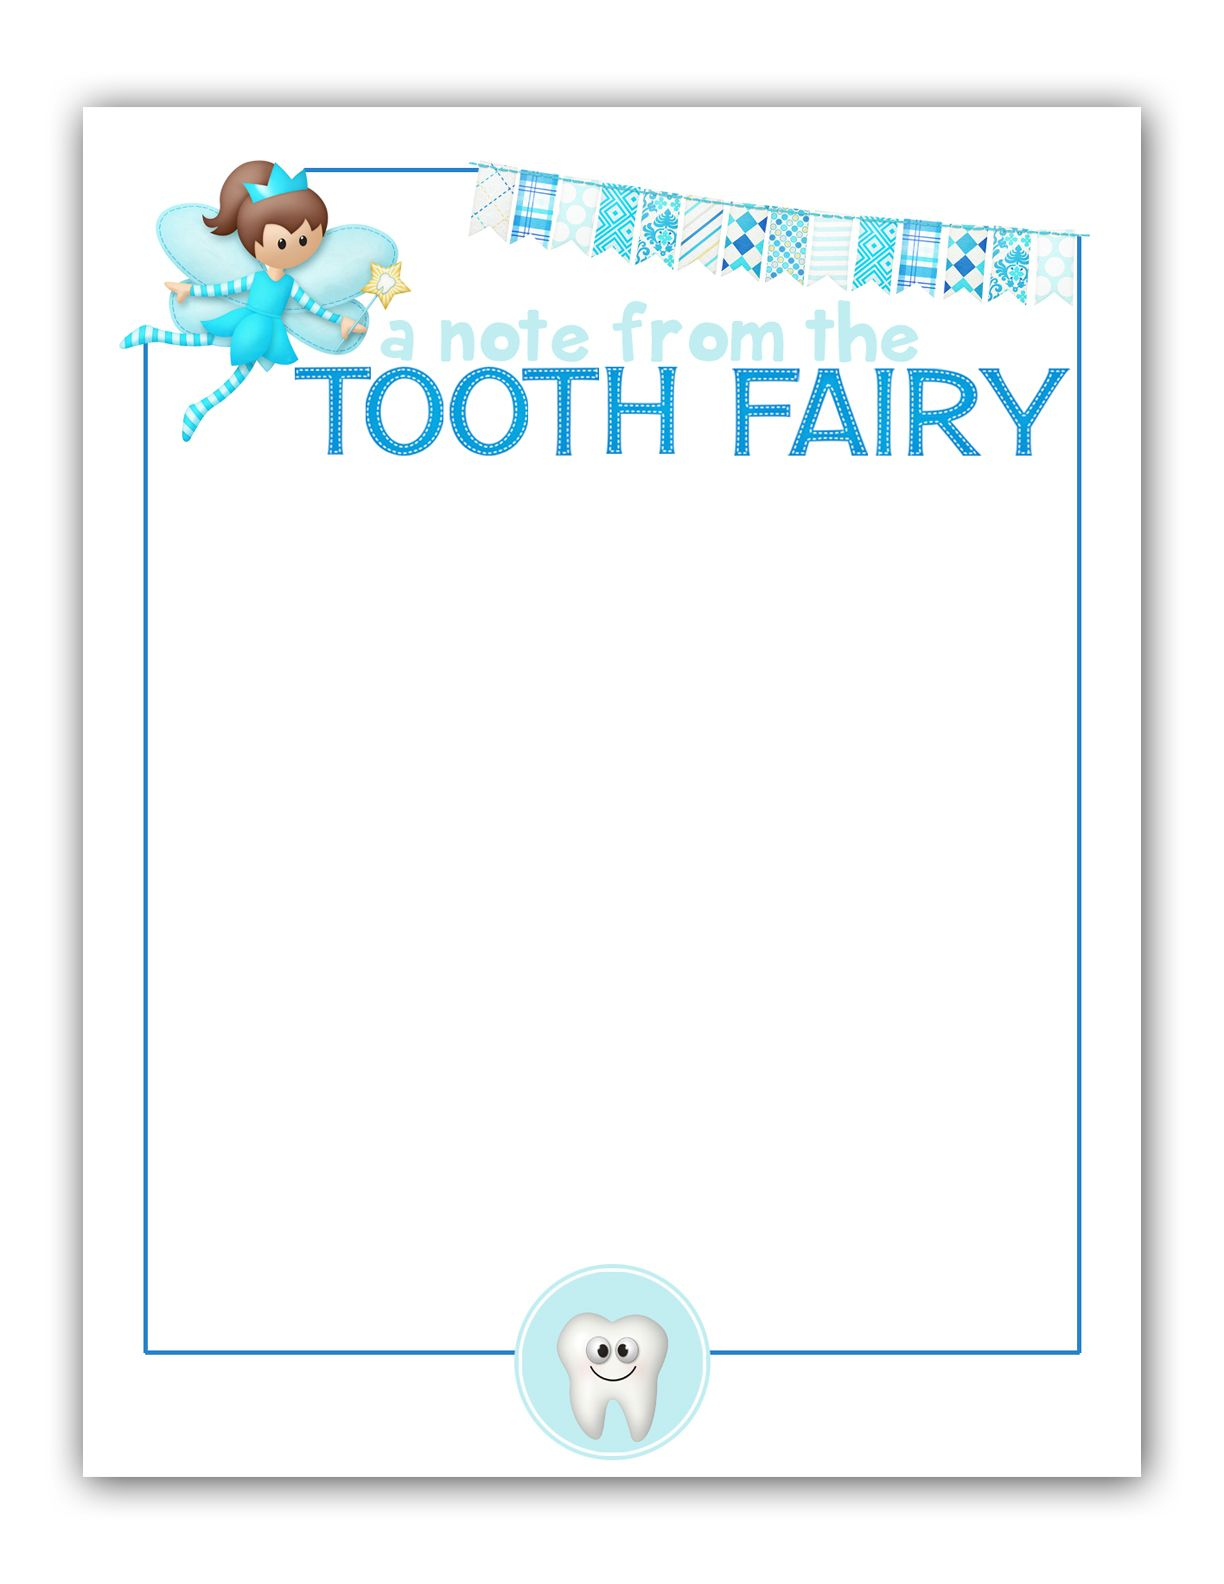 M|K Designs Blog: Tooth Fairy Stationary - Free Printable | Tooth - Free Printable Tooth Fairy Pictures